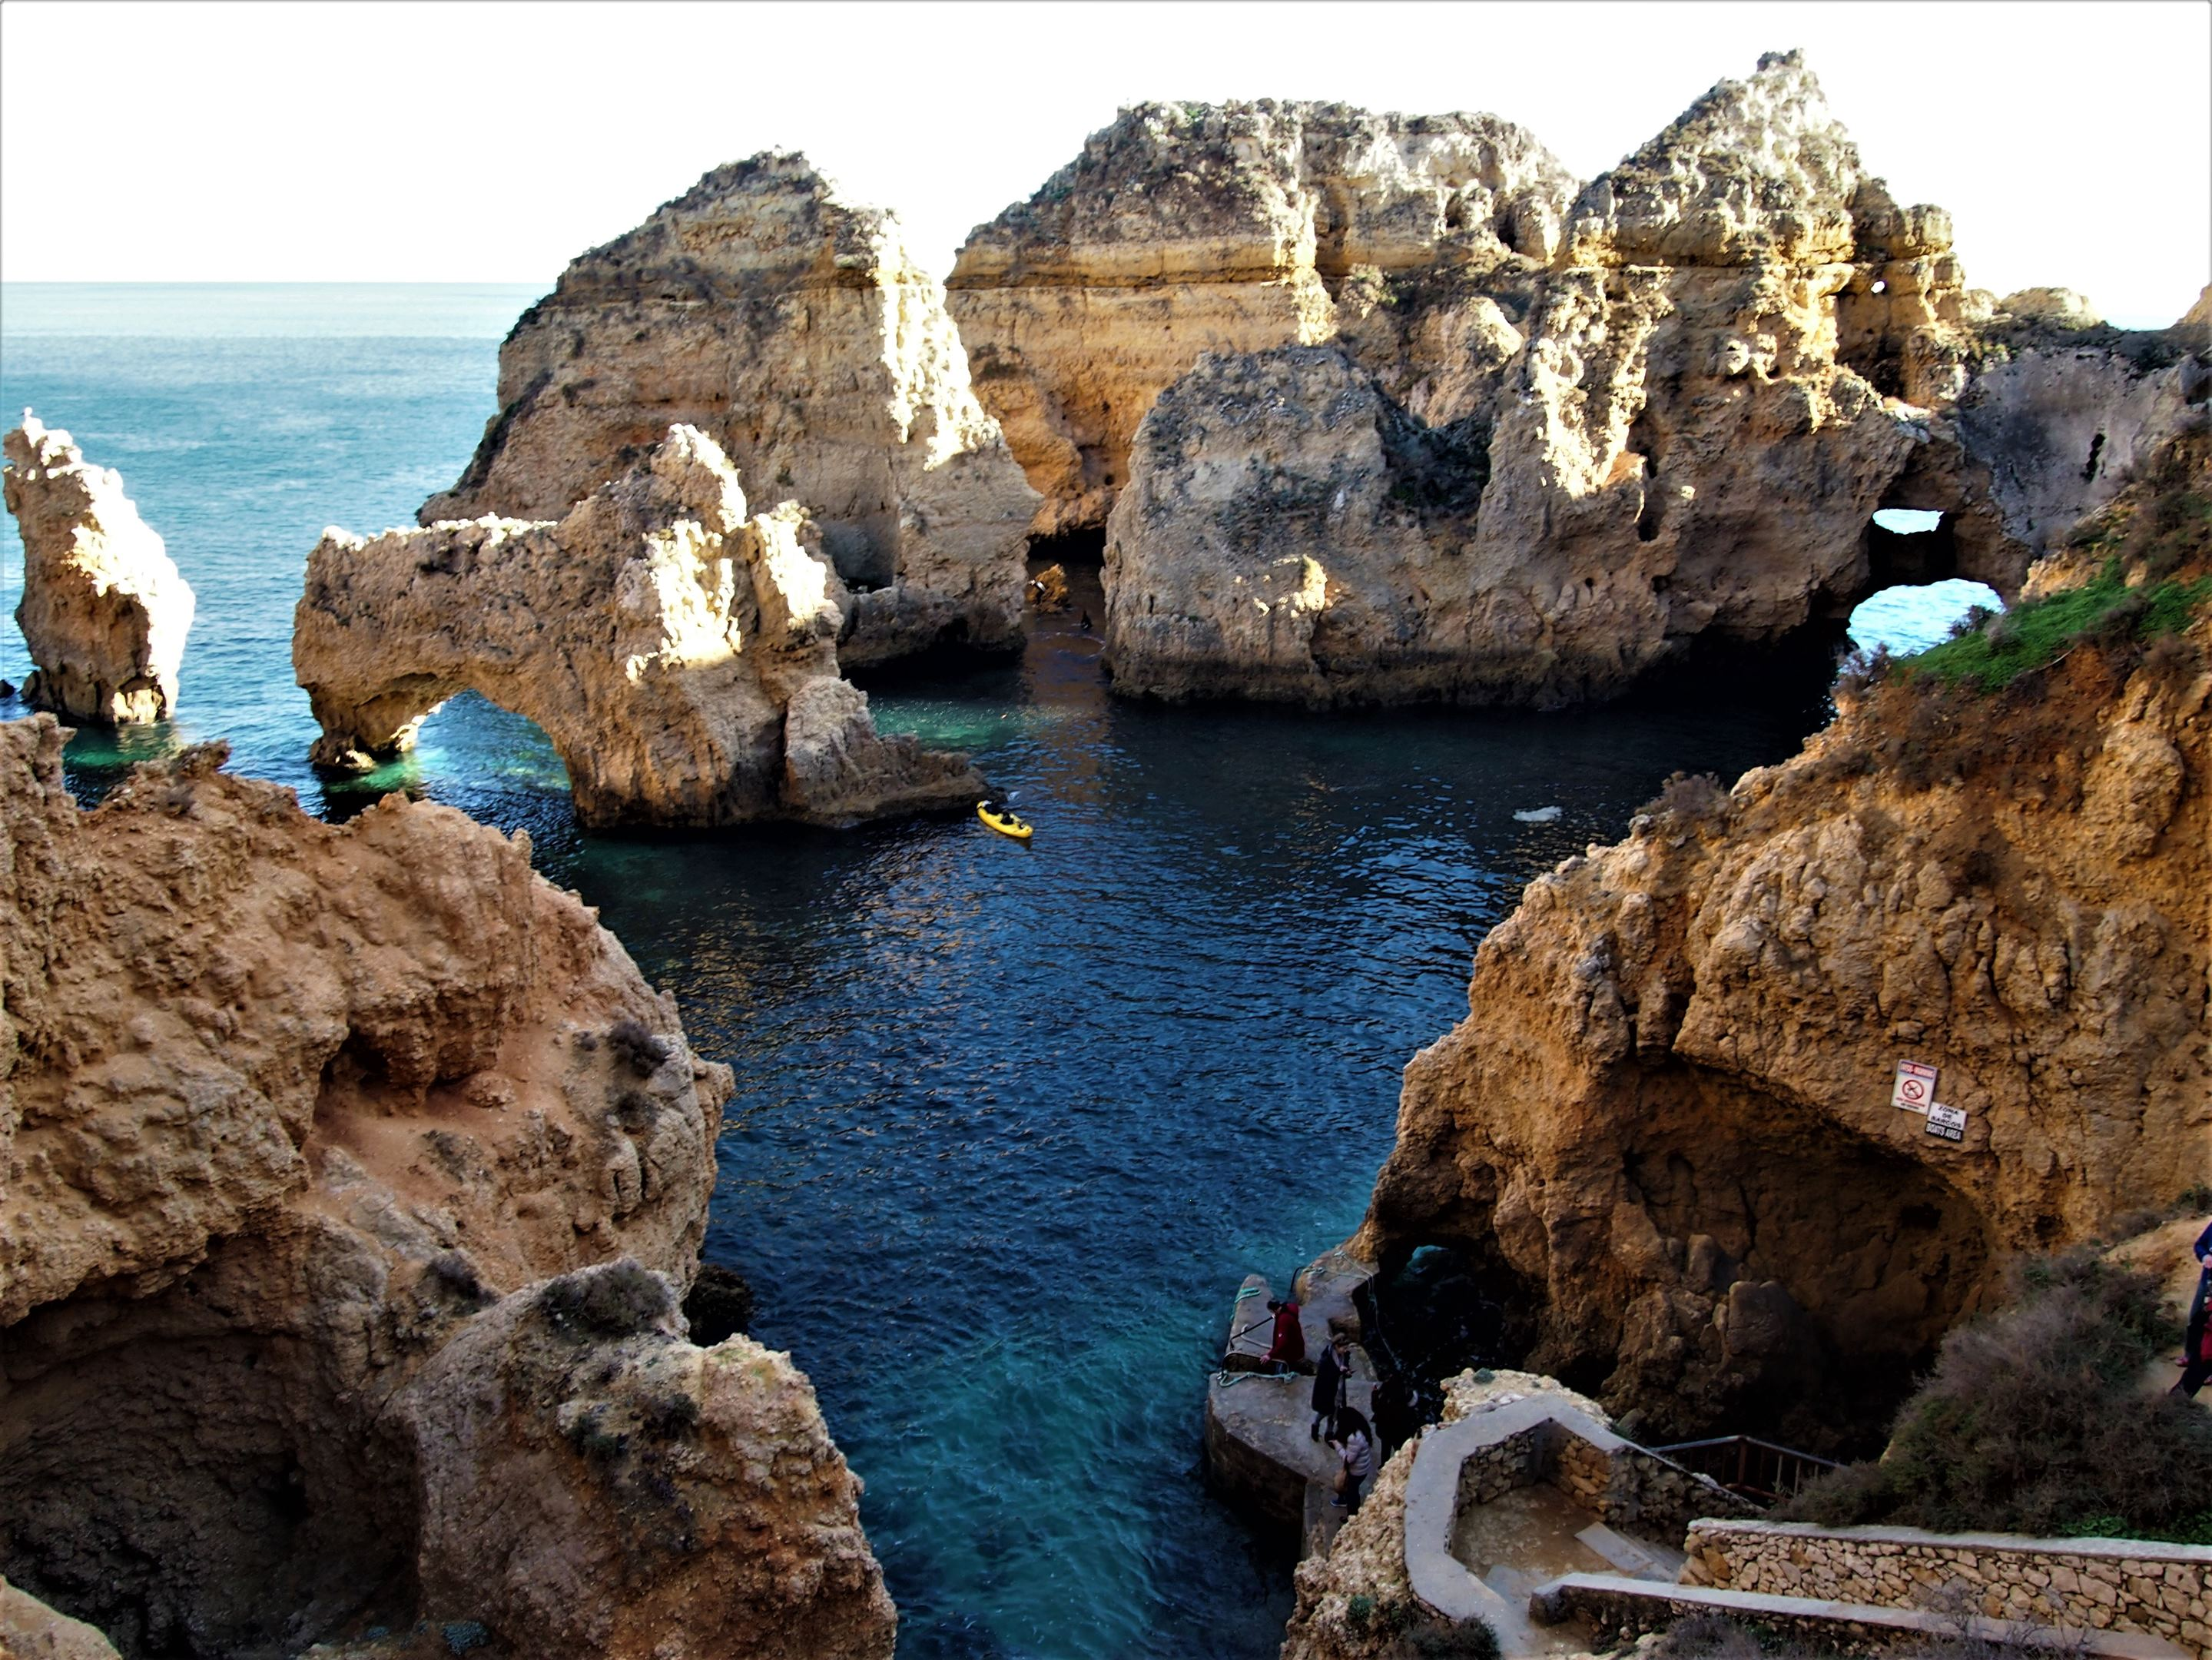 At Ponta da Piedade, Lagos - having walked down the steps. A kayak tour is a great way to see the caves and beaches up close, some impossible to get to by car